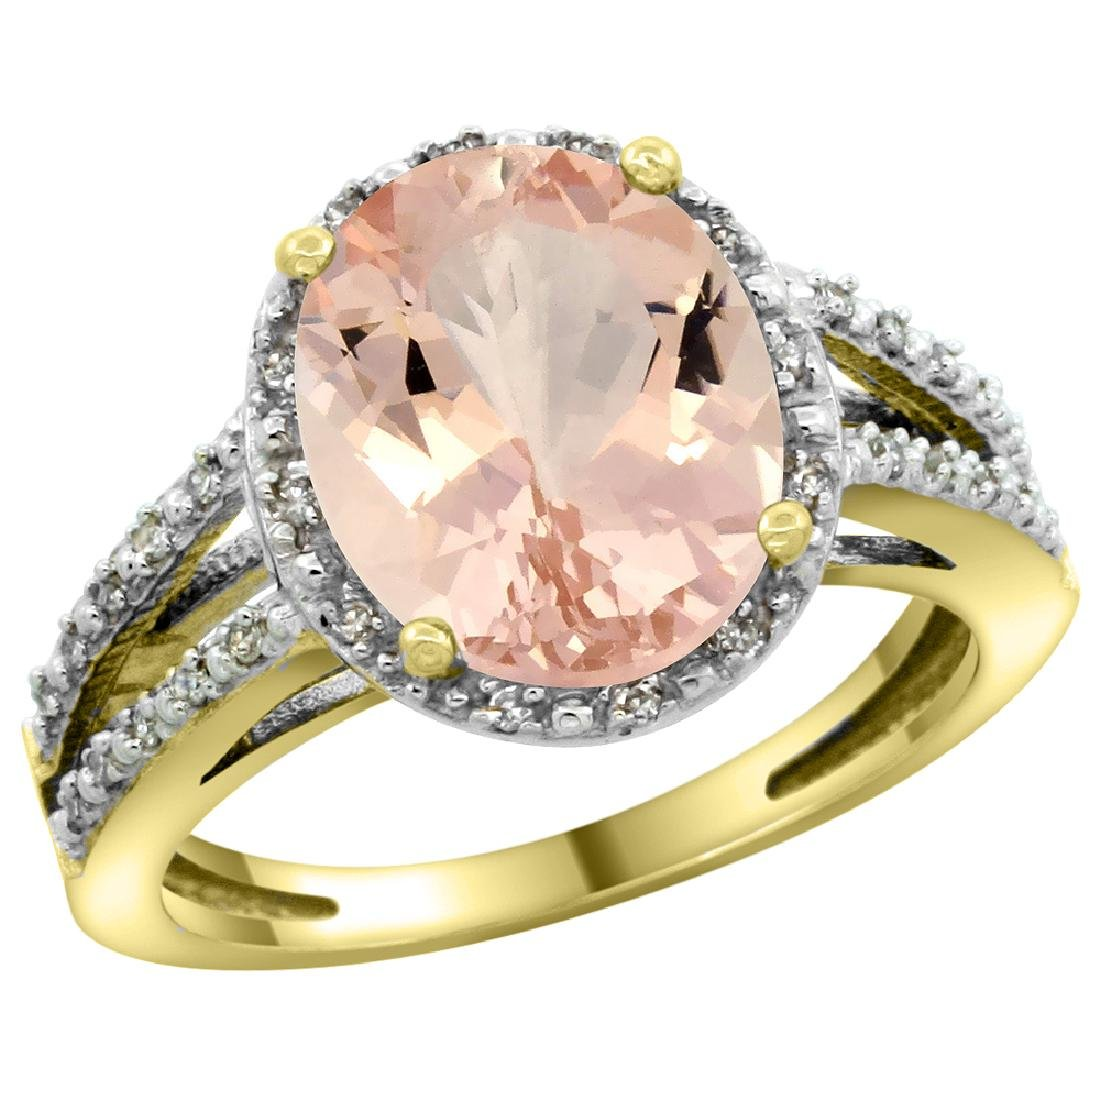 Natural 3.09 ctw Morganite & Diamond Engagement Ring